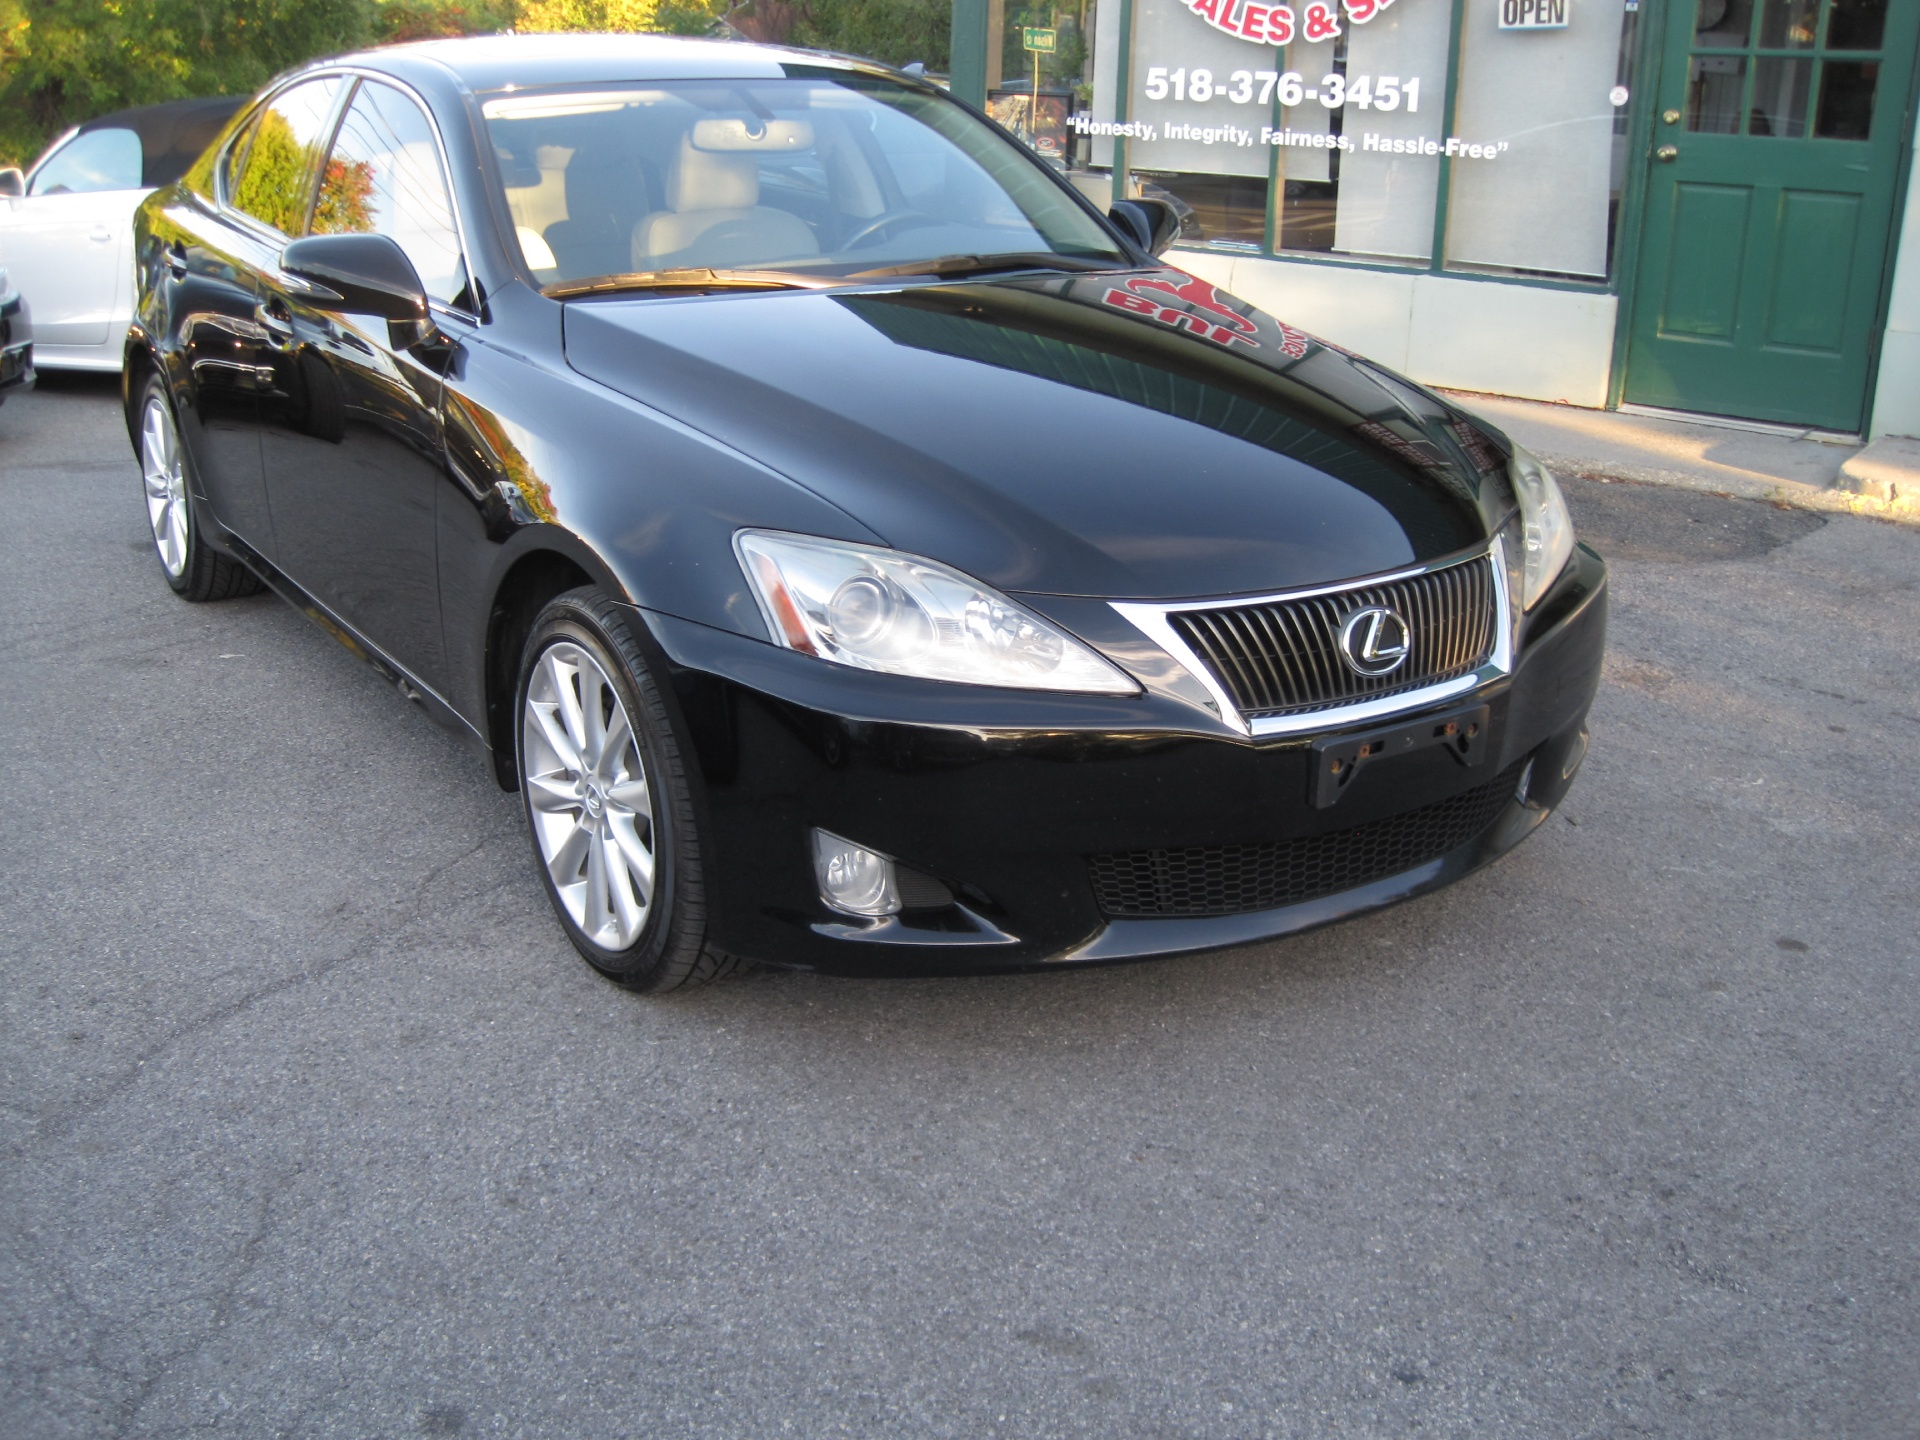 2010 Lexus IS 250 AWD VERY CLEAN Stock # 15145 for sale near